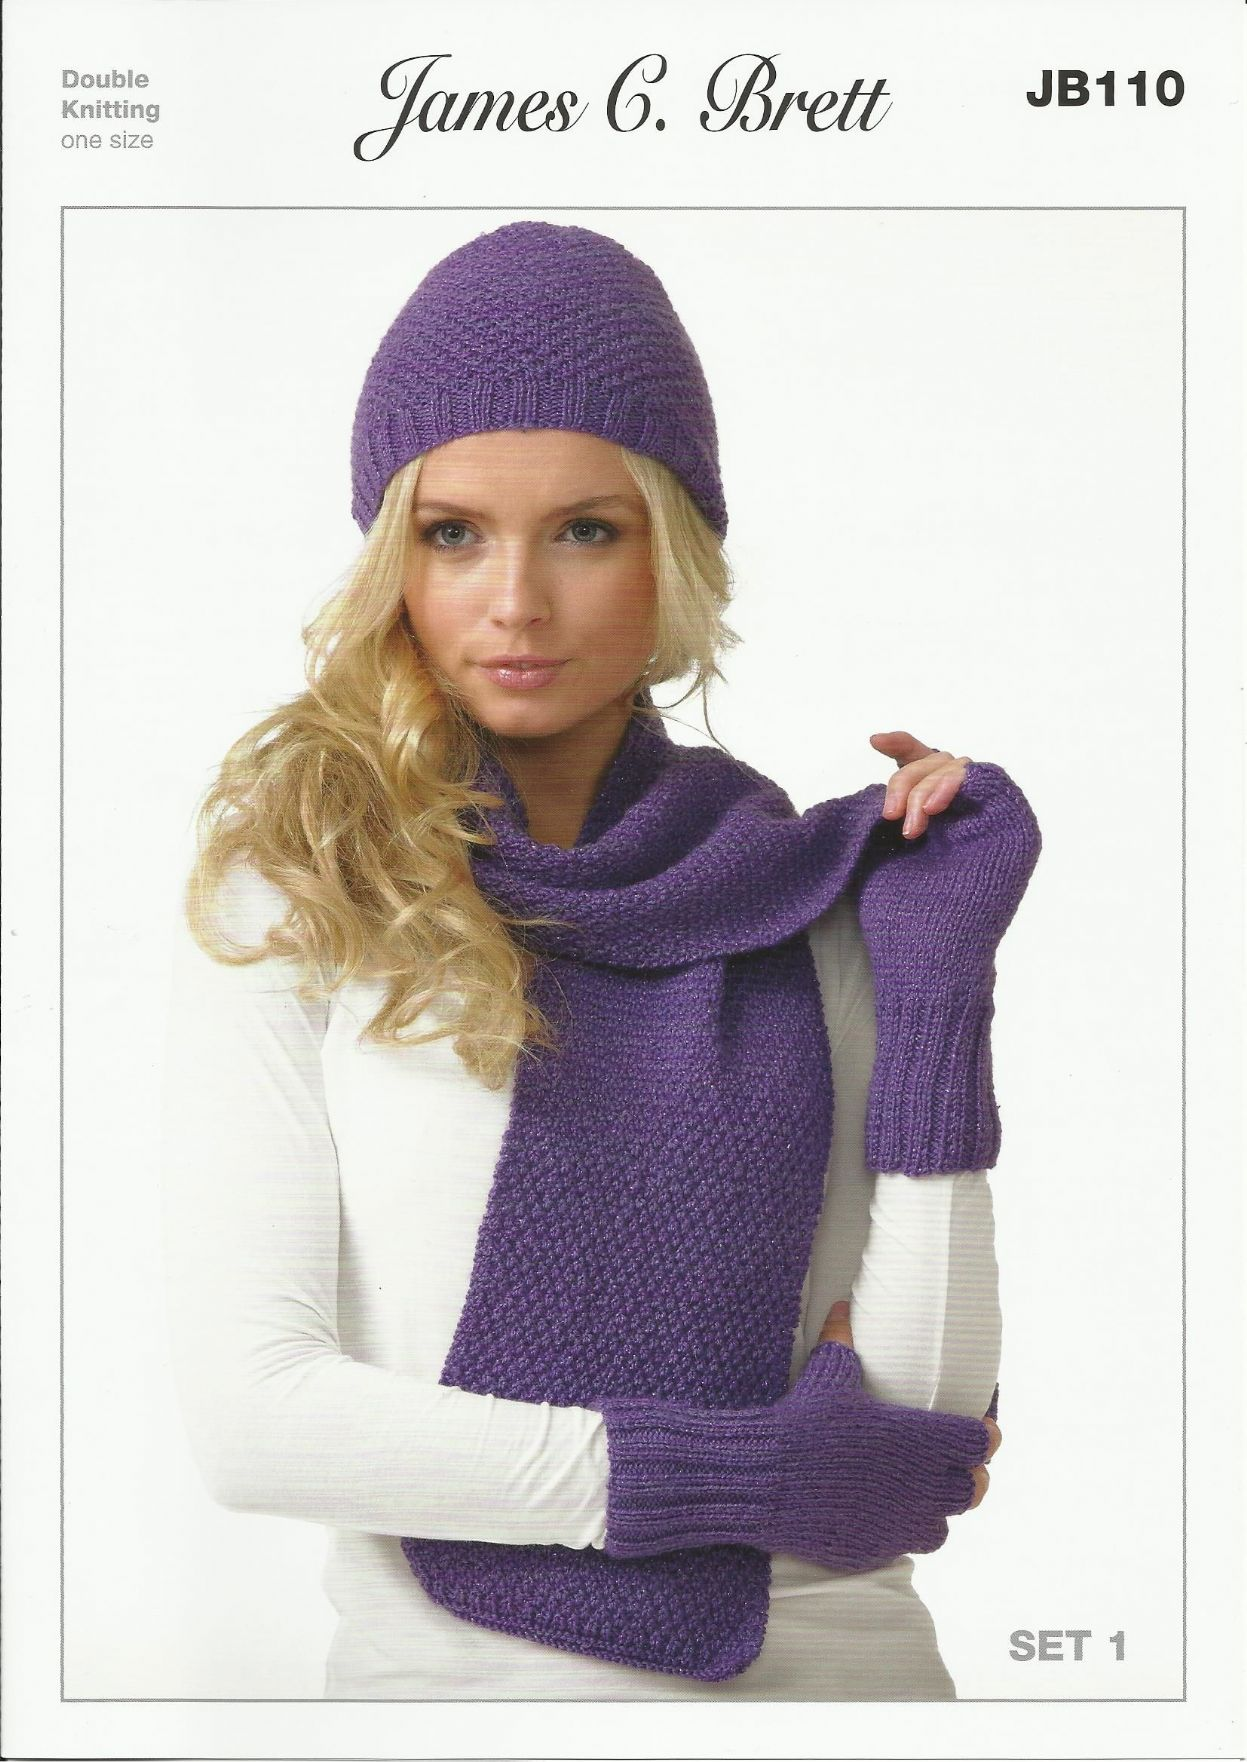 Knitting Pattern Ladies Gloves Dk : James C Brett Ladies Hats Scarves & Gloves in Twinkle DK ...